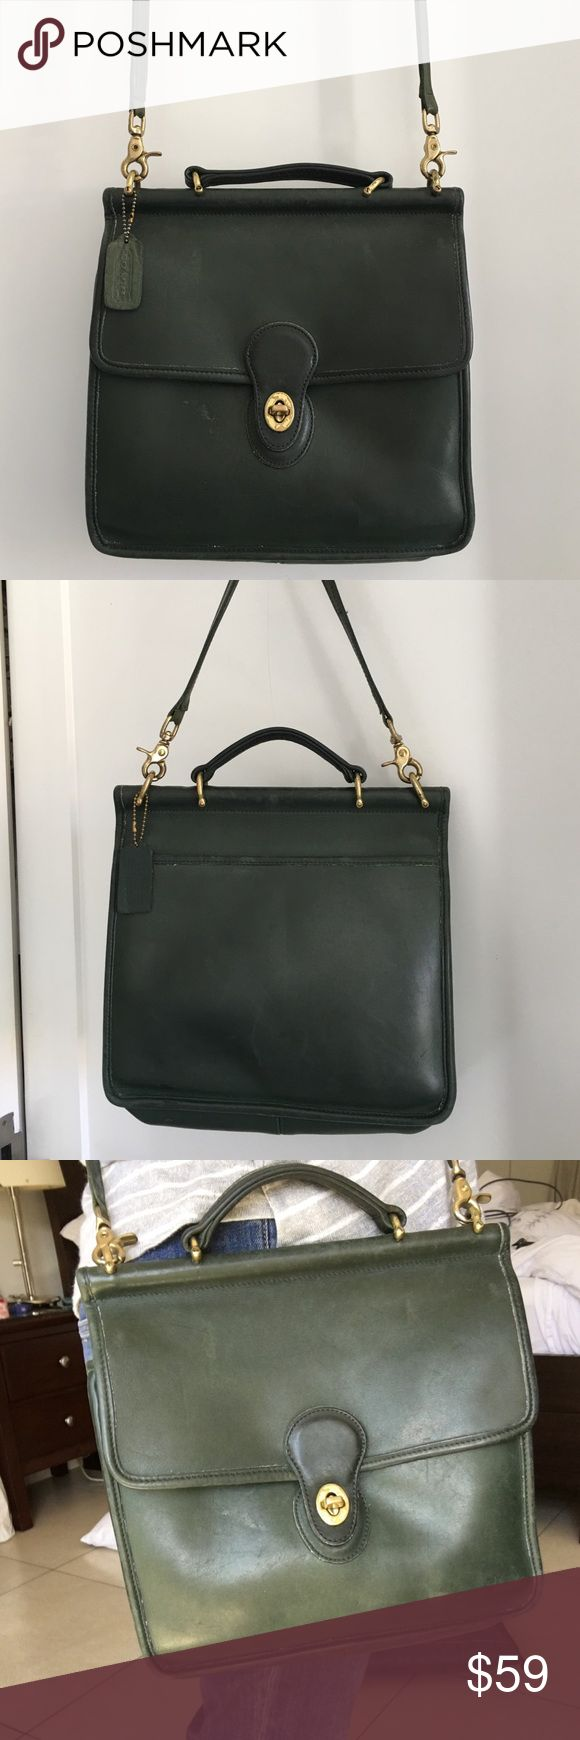 Vintage Coach Legacy Green Willis Station Bag Preowned Vintage Coach Legacy Green Willis Station Bag. Bag has signs of loving wear and patina due to bags age. Serial No.D5B-9927. Please look at pictures for better reference. Happy shopping!! Coach Bags Crossbody Bags